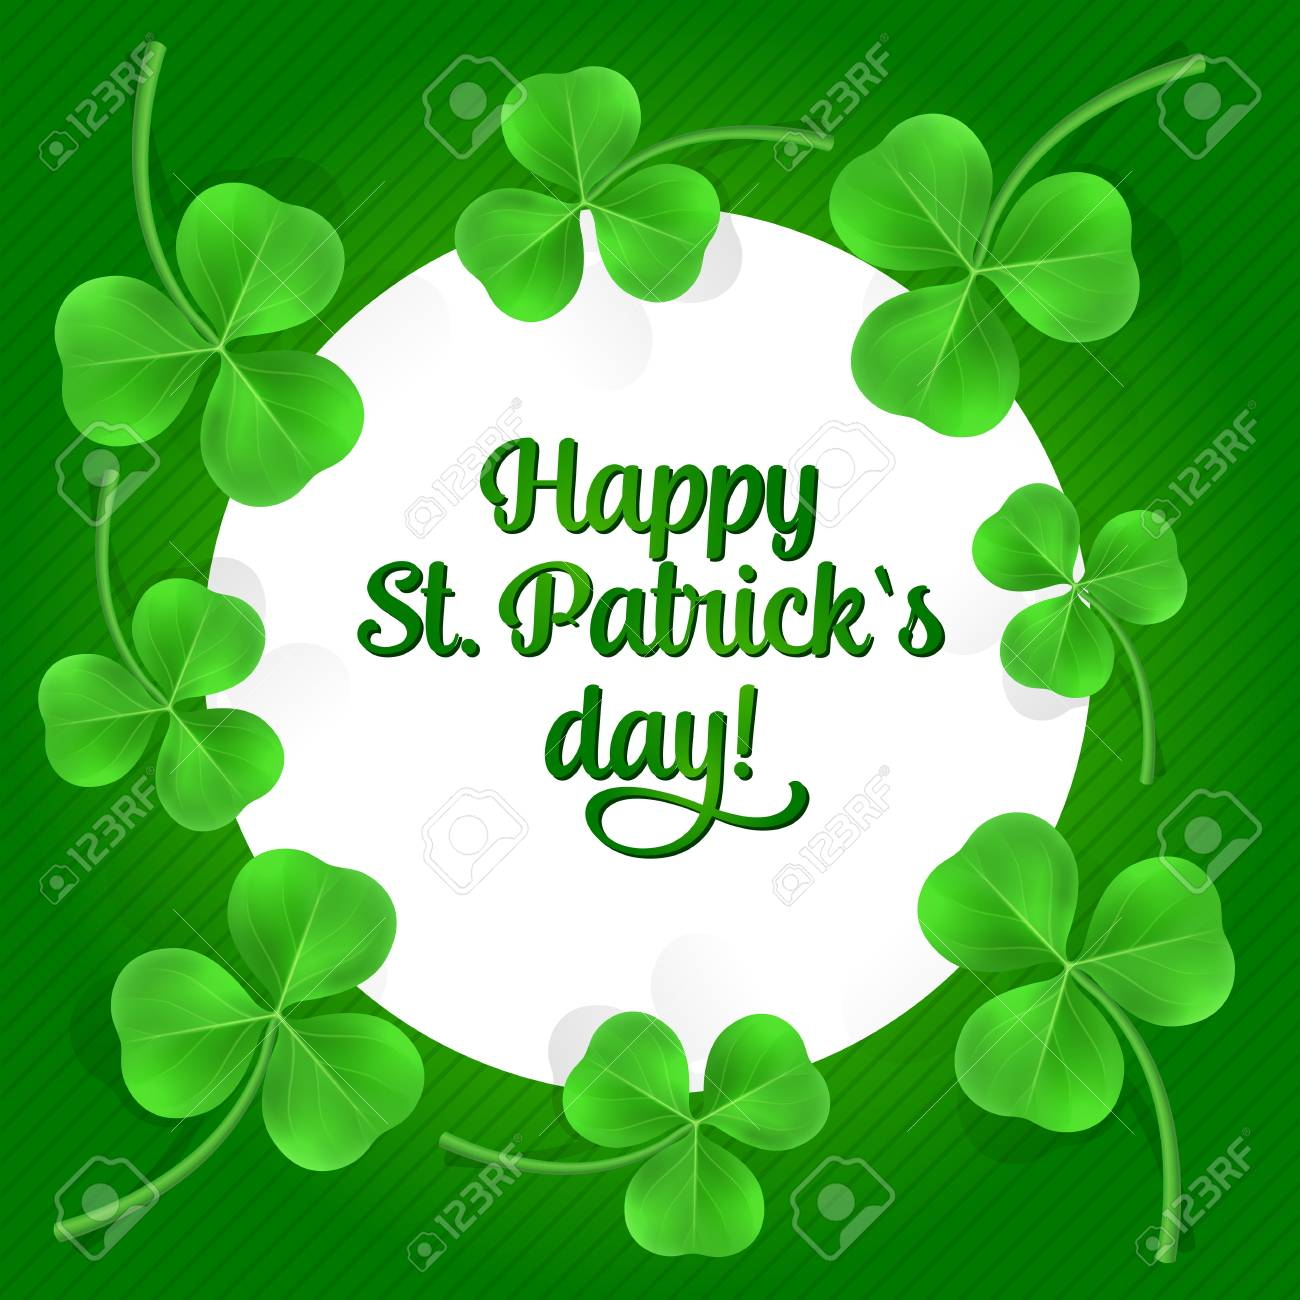 Happy St Patricks Day Lettering St Patricks Day Greeting Card